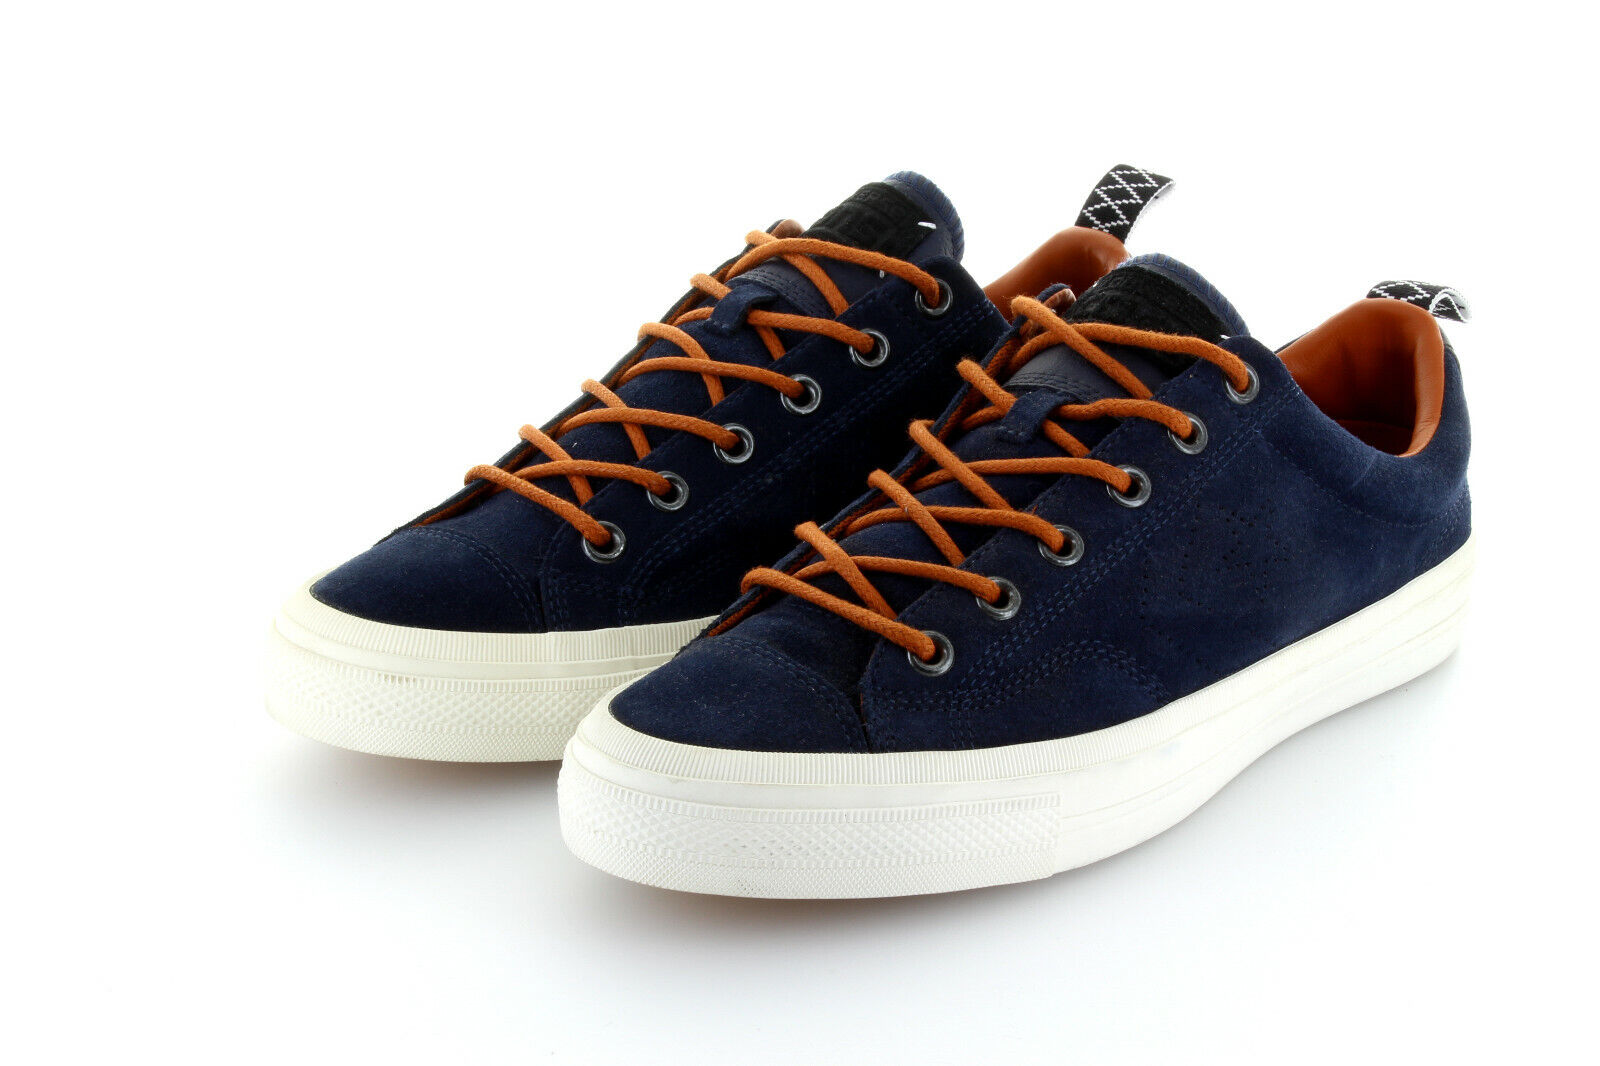 Converse Cons Star Player Ox Suede Obsidian Blau Antique Gr. 42,5   43,5 US 9